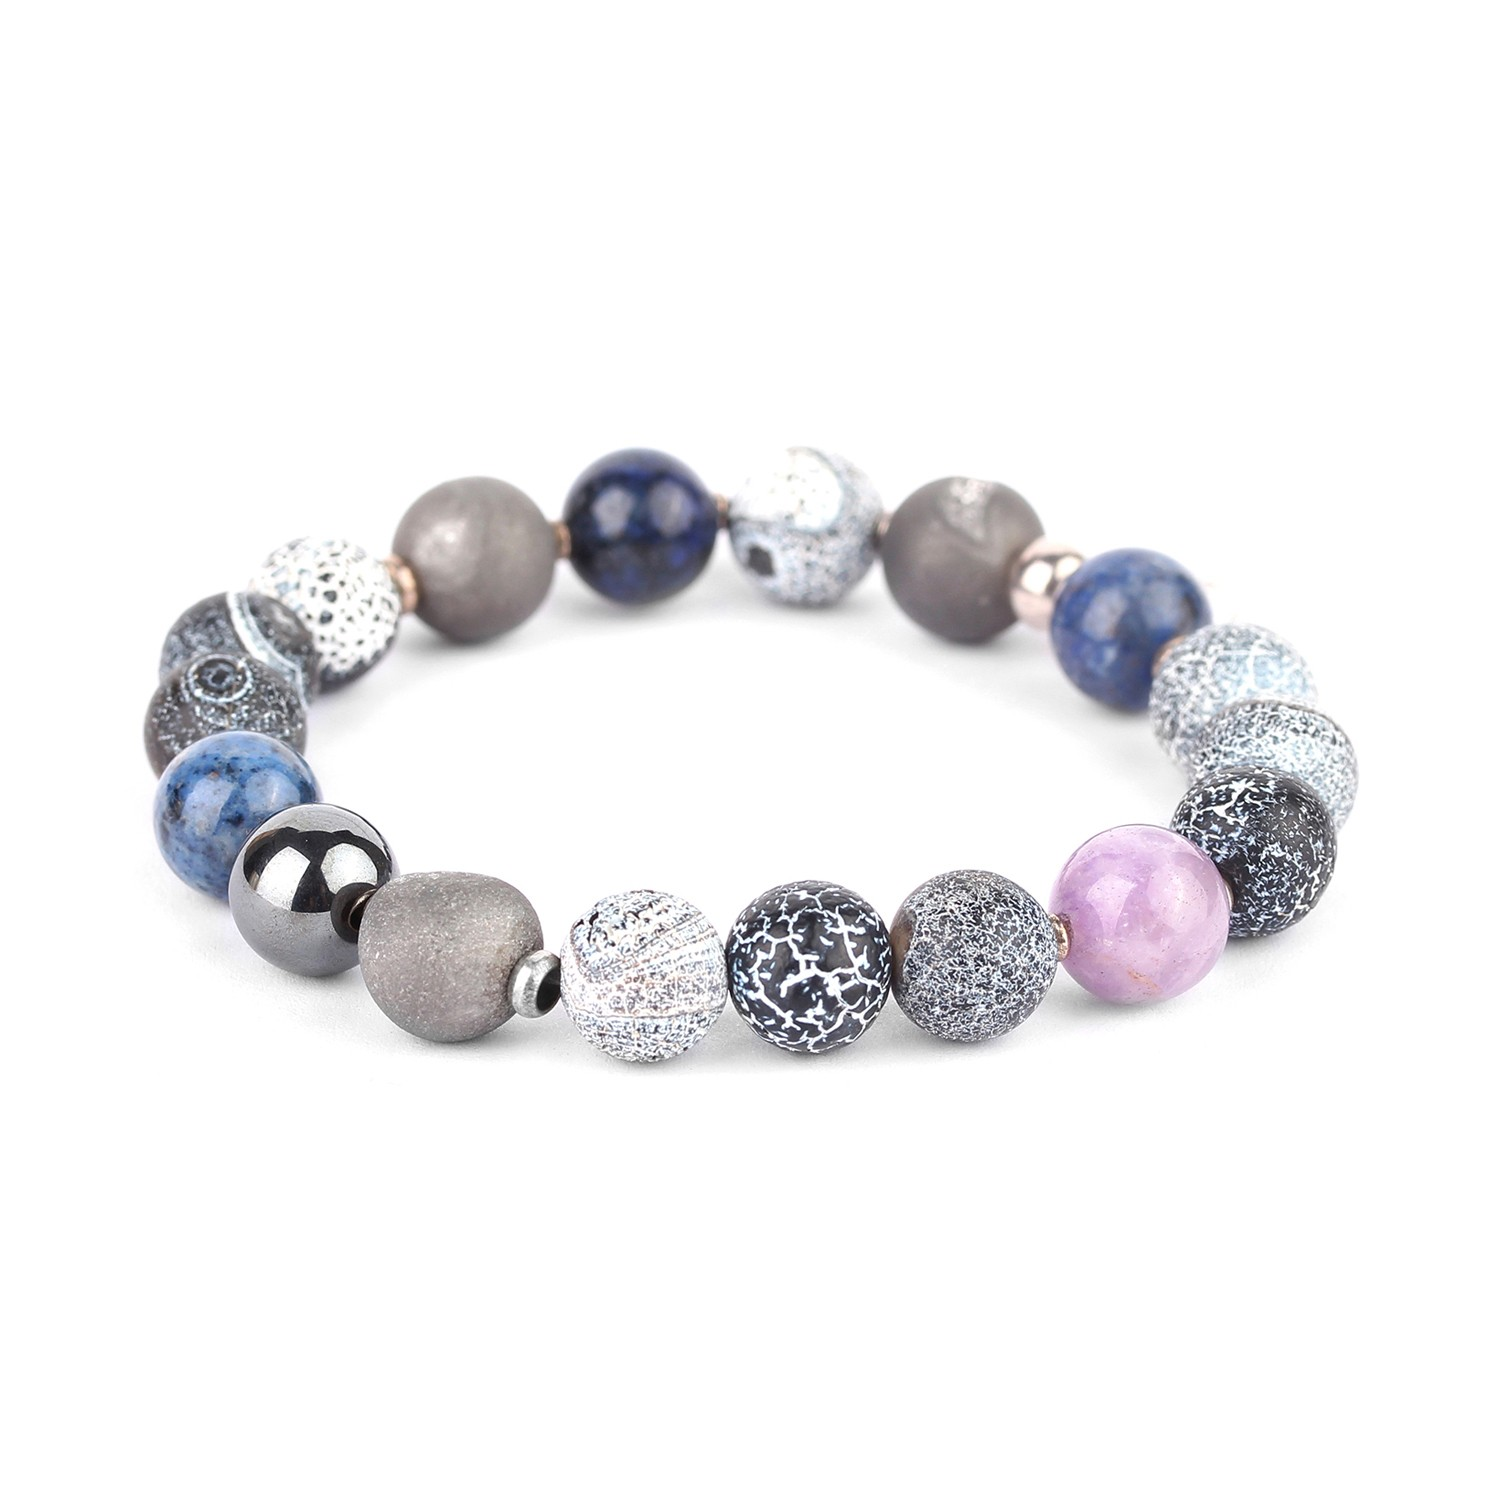 BAIKAL assorted beads stretch bracelet